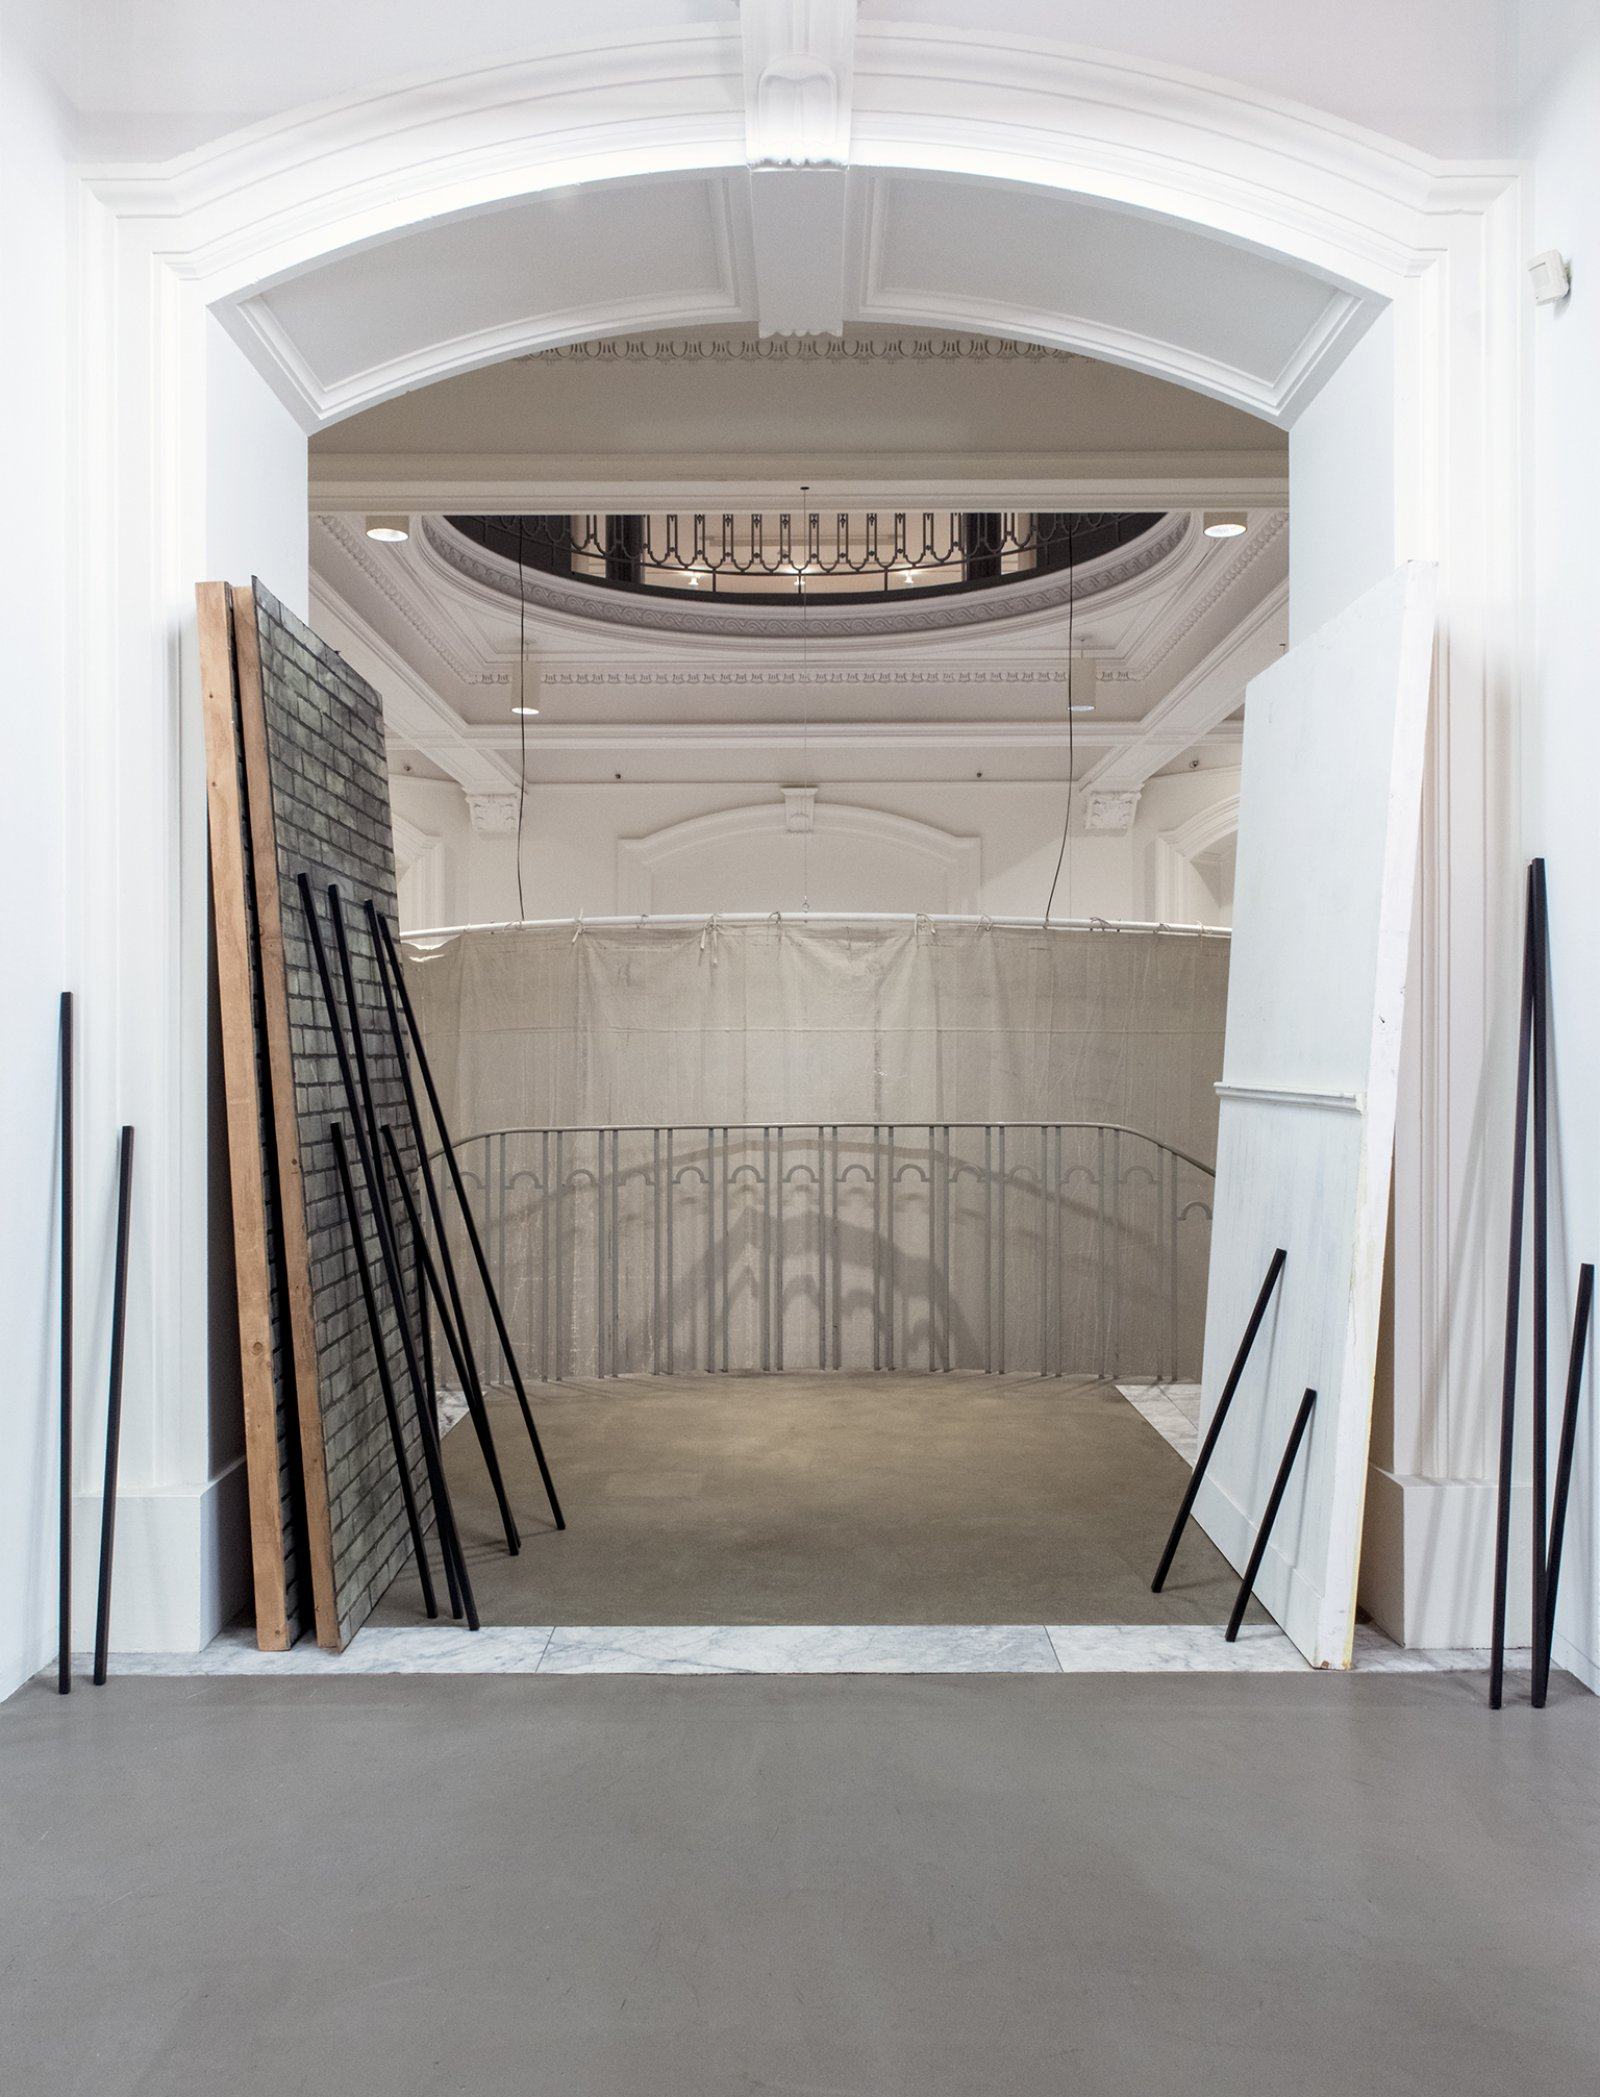 Geoffrey Farmer, installation view, How Do I Fit This Ghost in My Mouth?, Vancouver Art Gallery, 2015 by Geoffrey Farmer